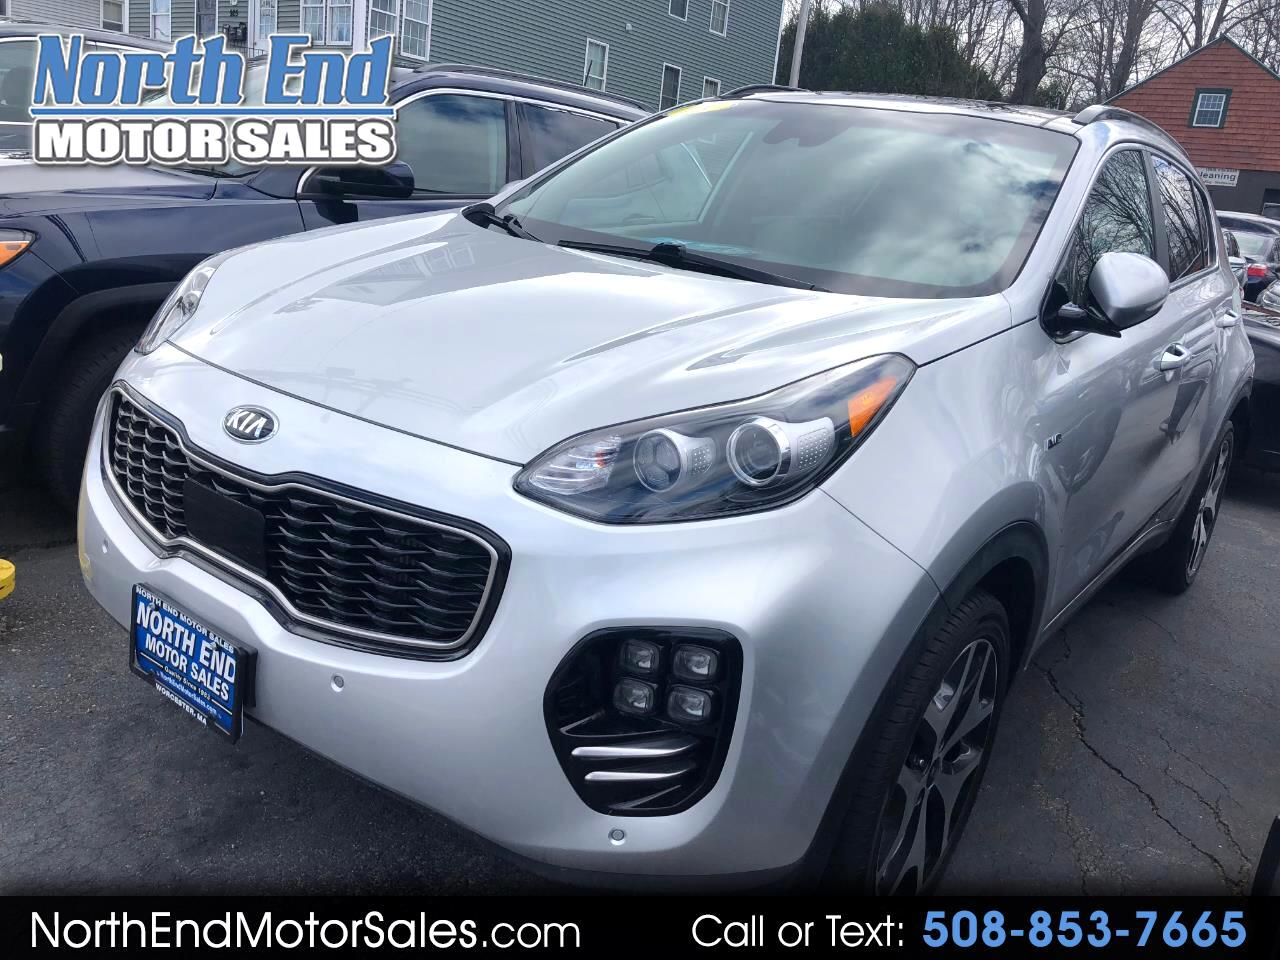 2018 Kia Sportage SX Turbo AWD